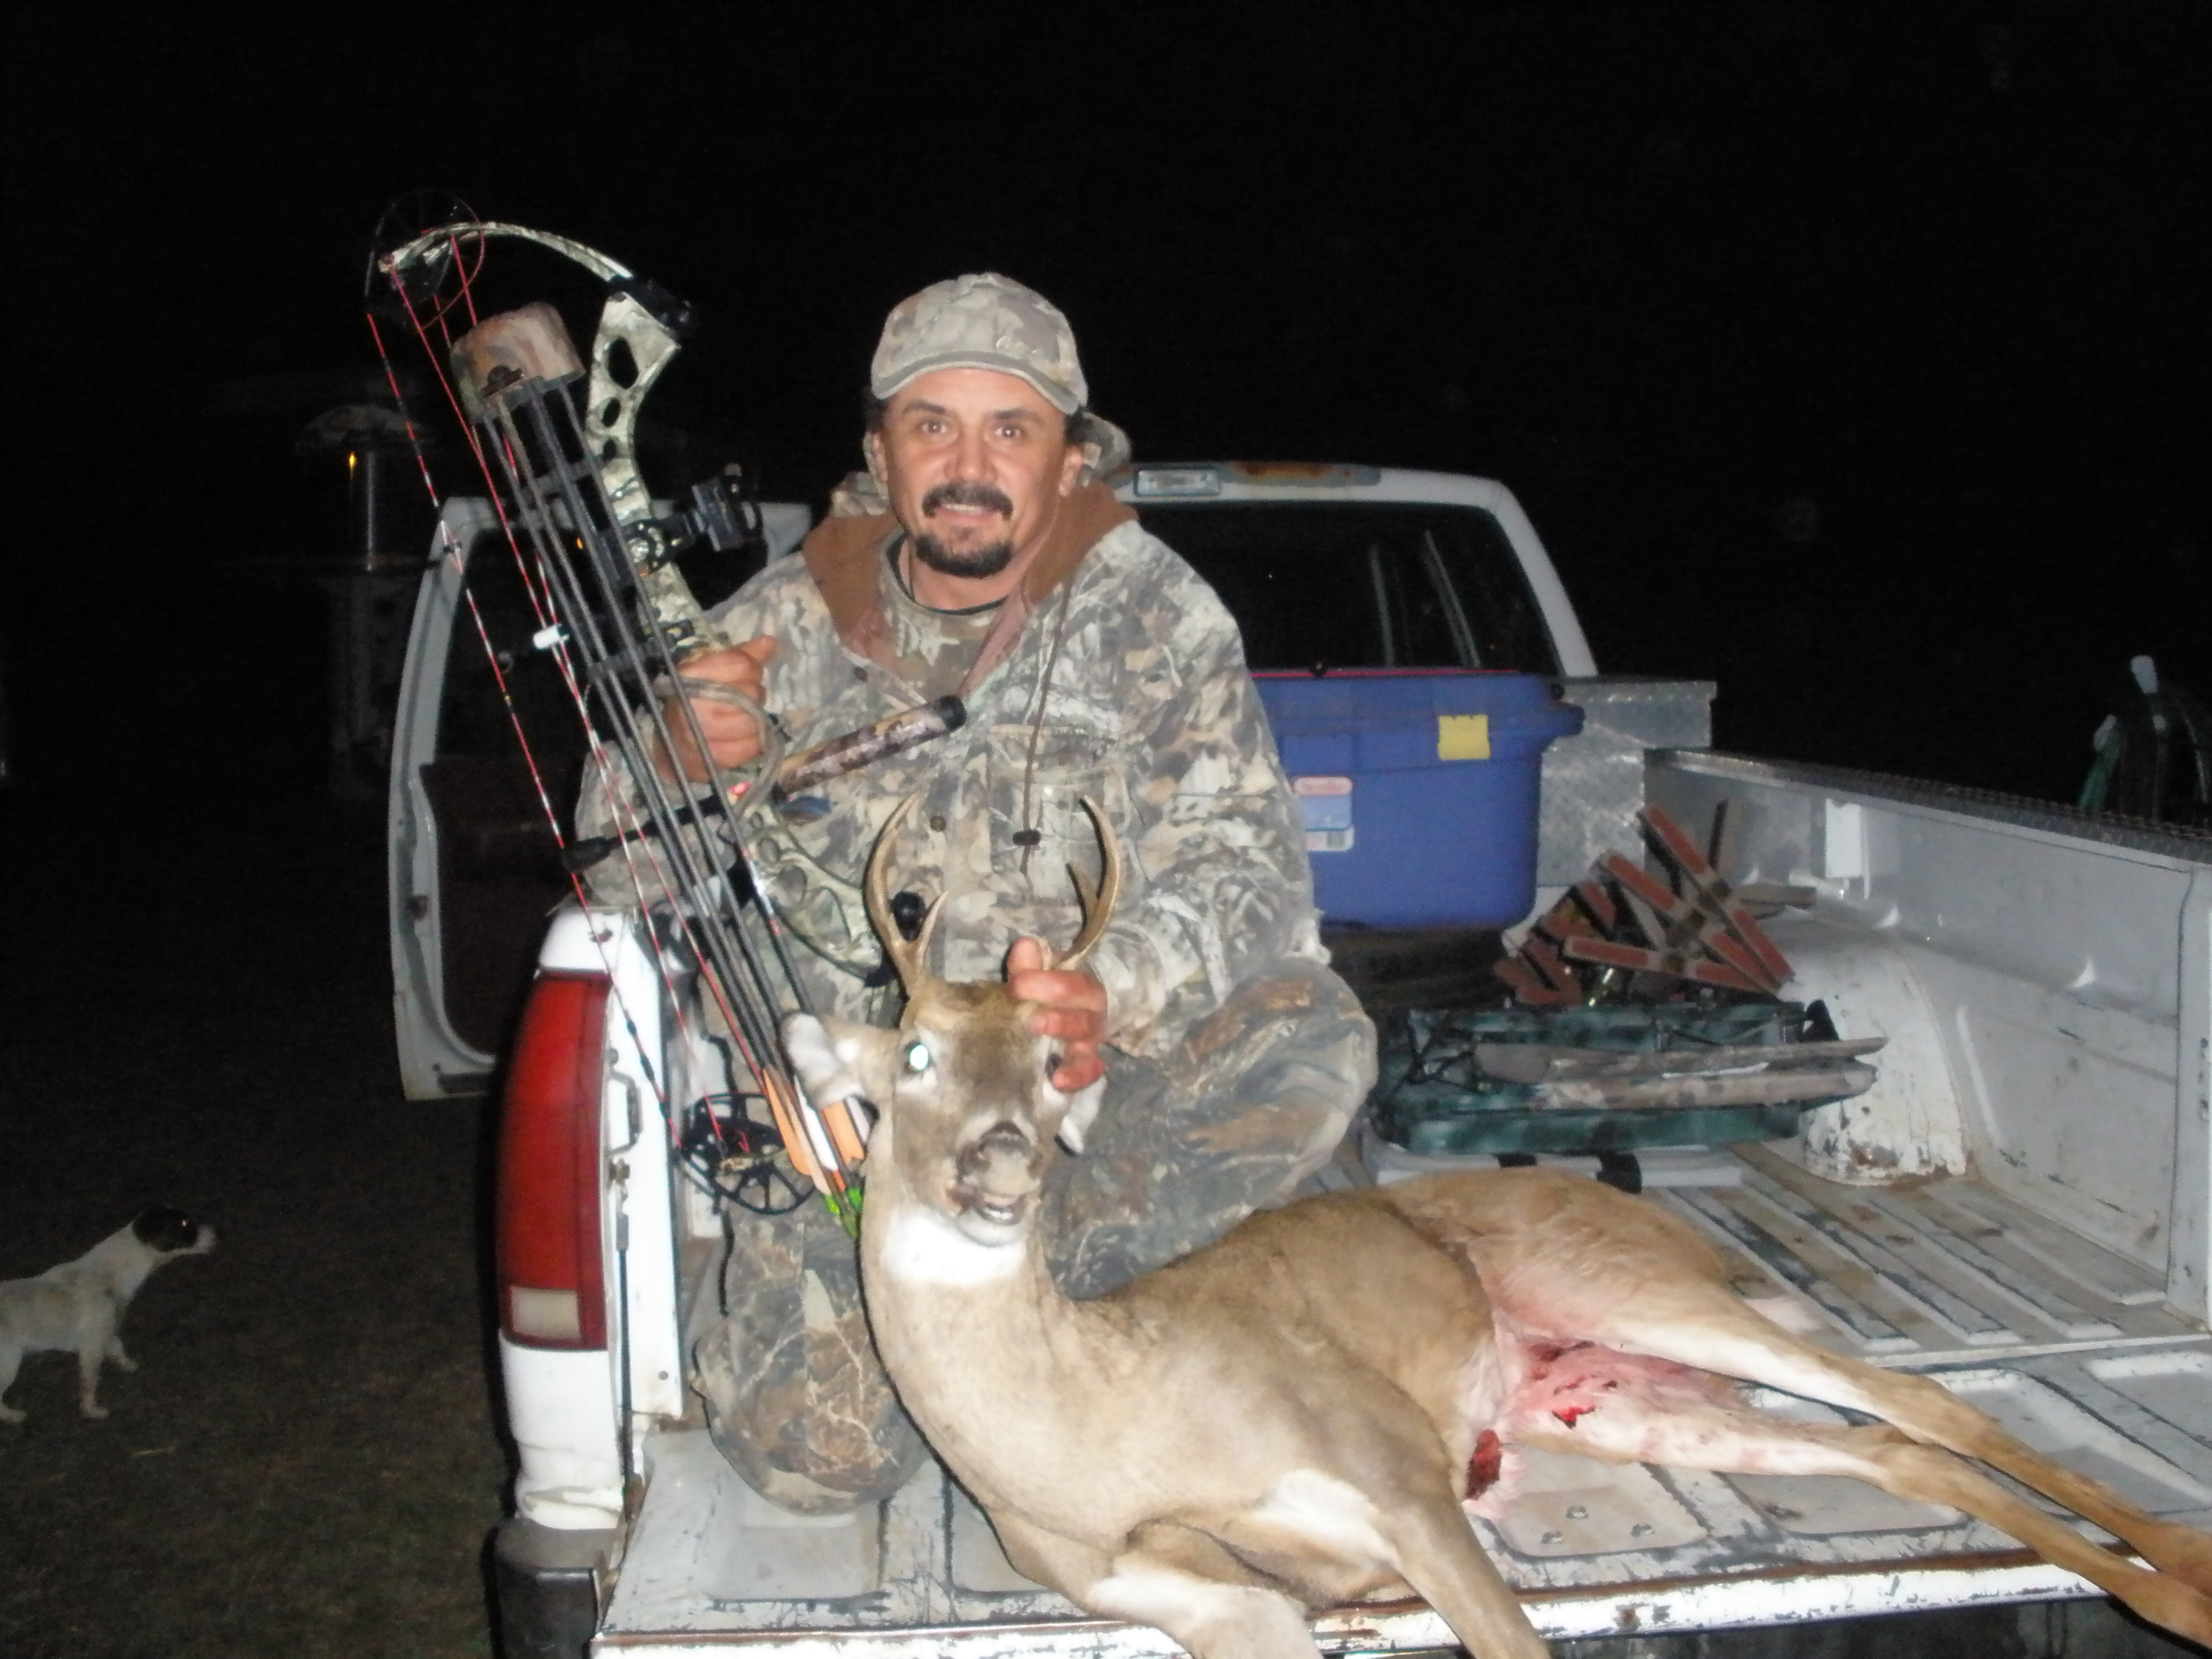 The Coyote Kid with an Oklahoma 7